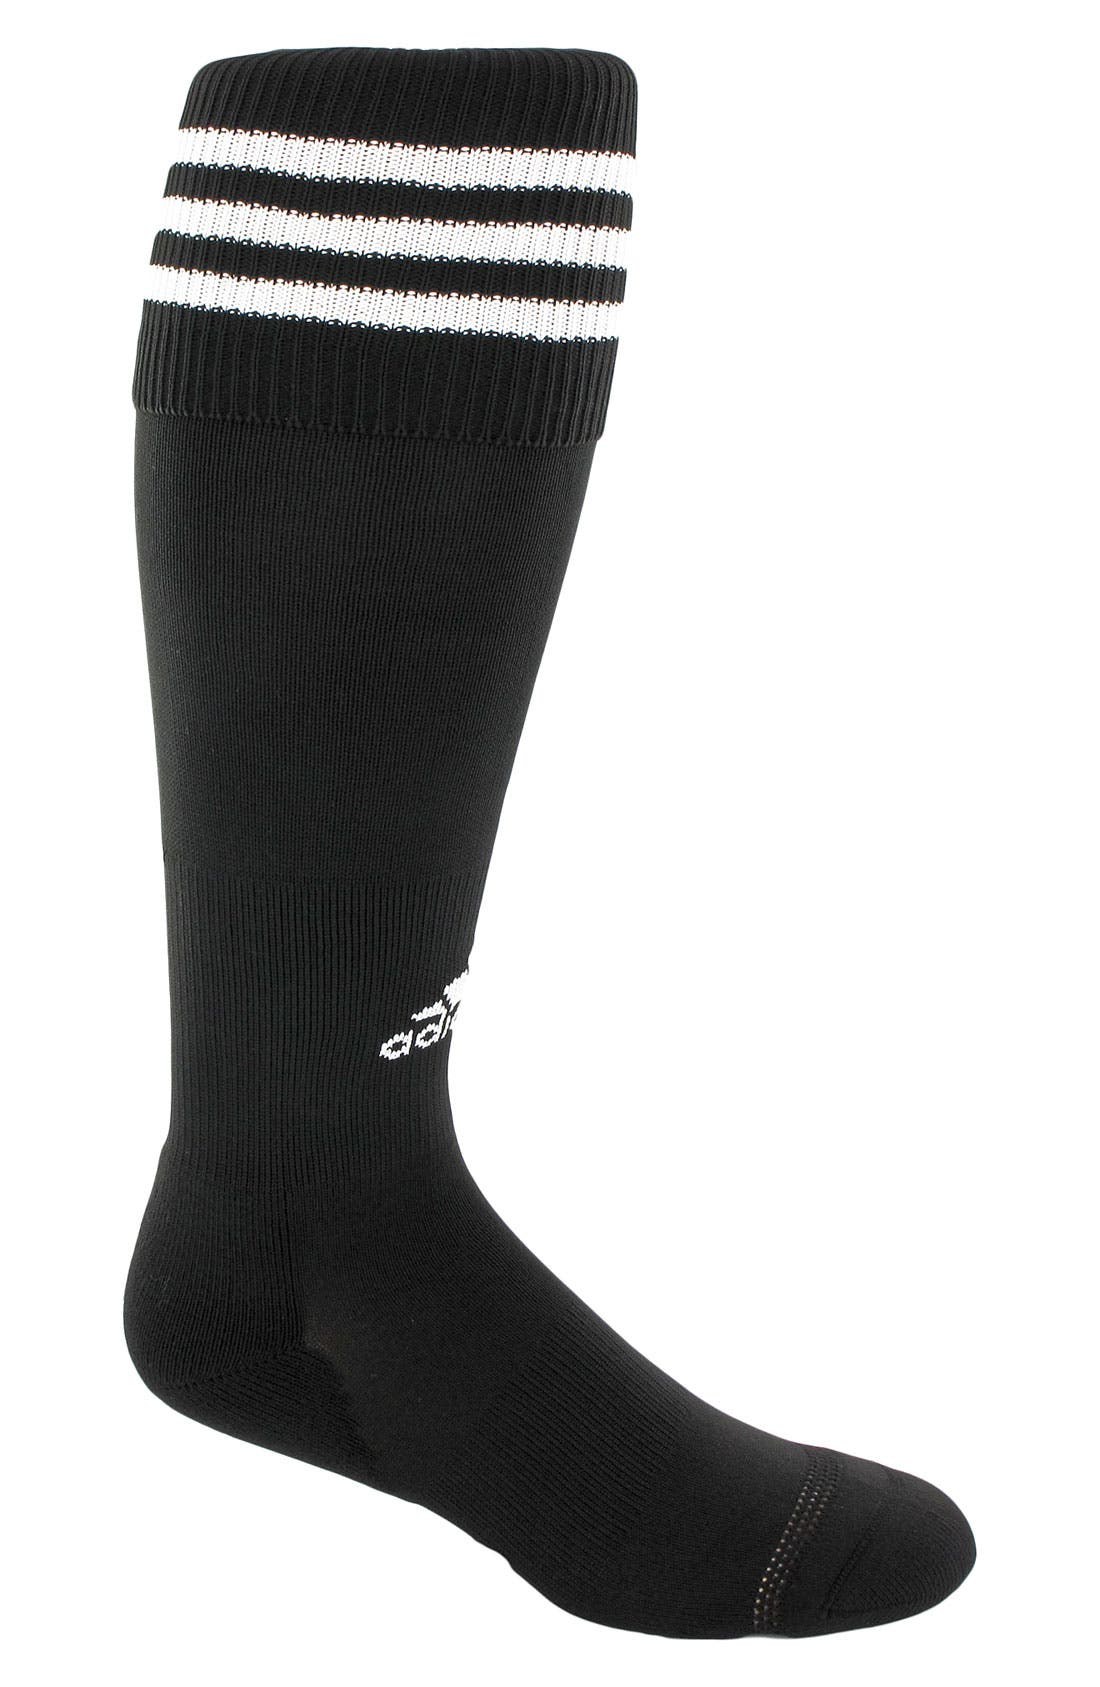 Alternate Image 1 Selected - adidas 'Copa Zone' Soccer Socks (Little Boys & Big Boys)